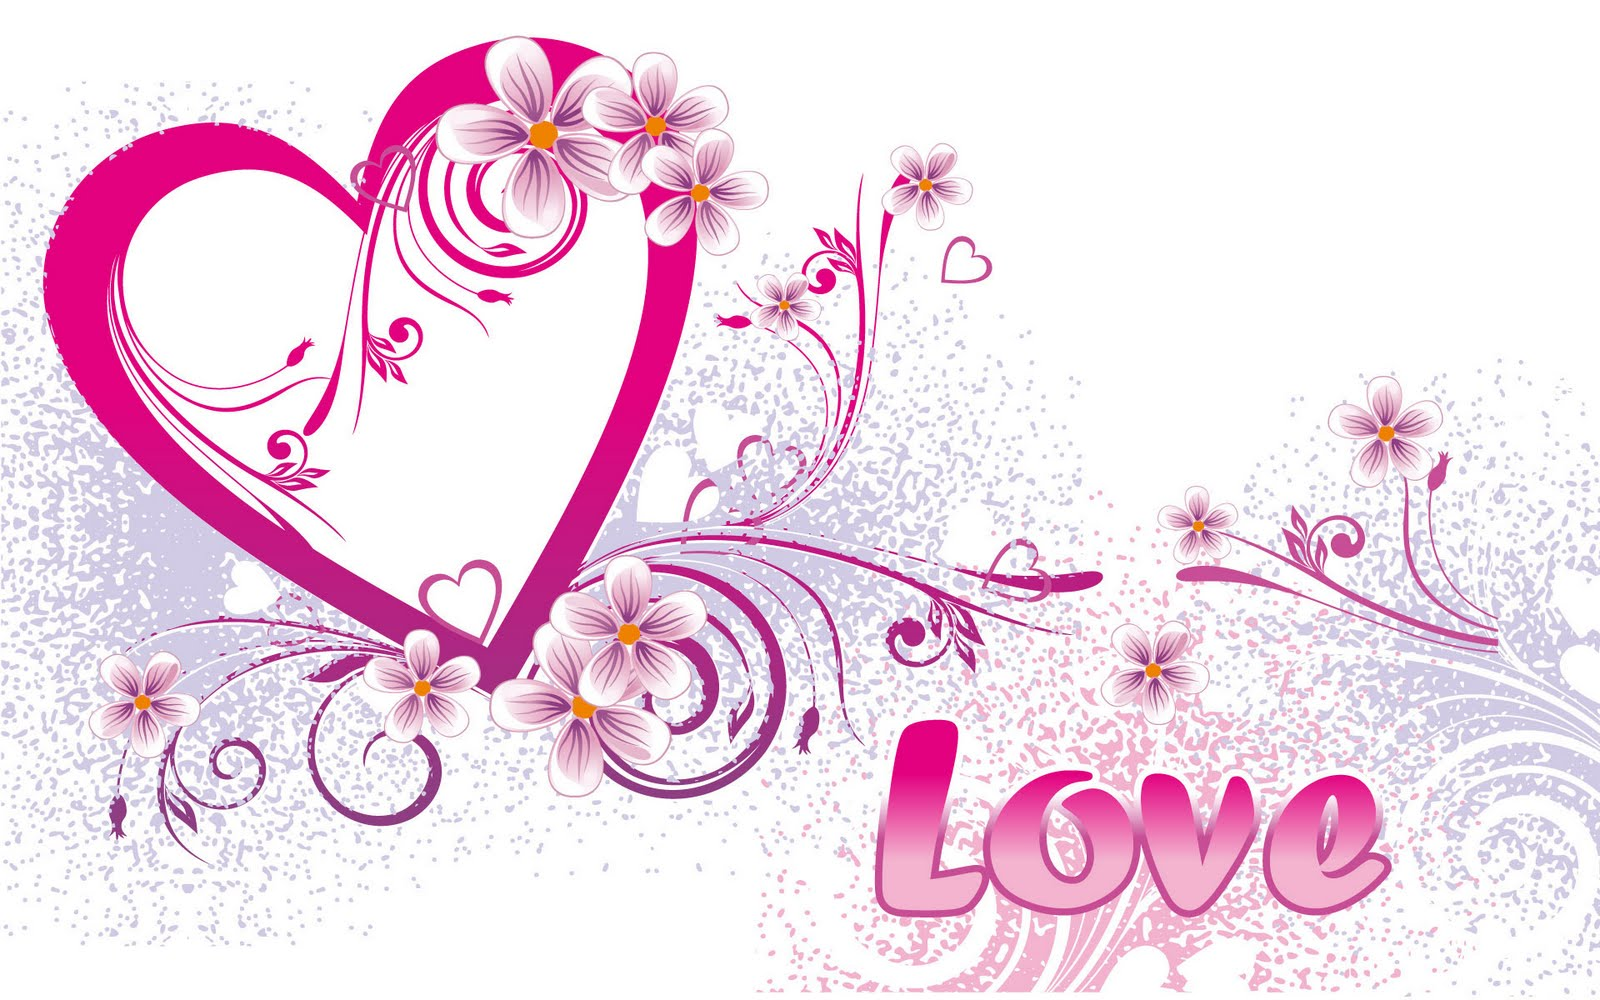 Love Wallpapers Live : Love Heart Live Wallpaper Best Wallpapers